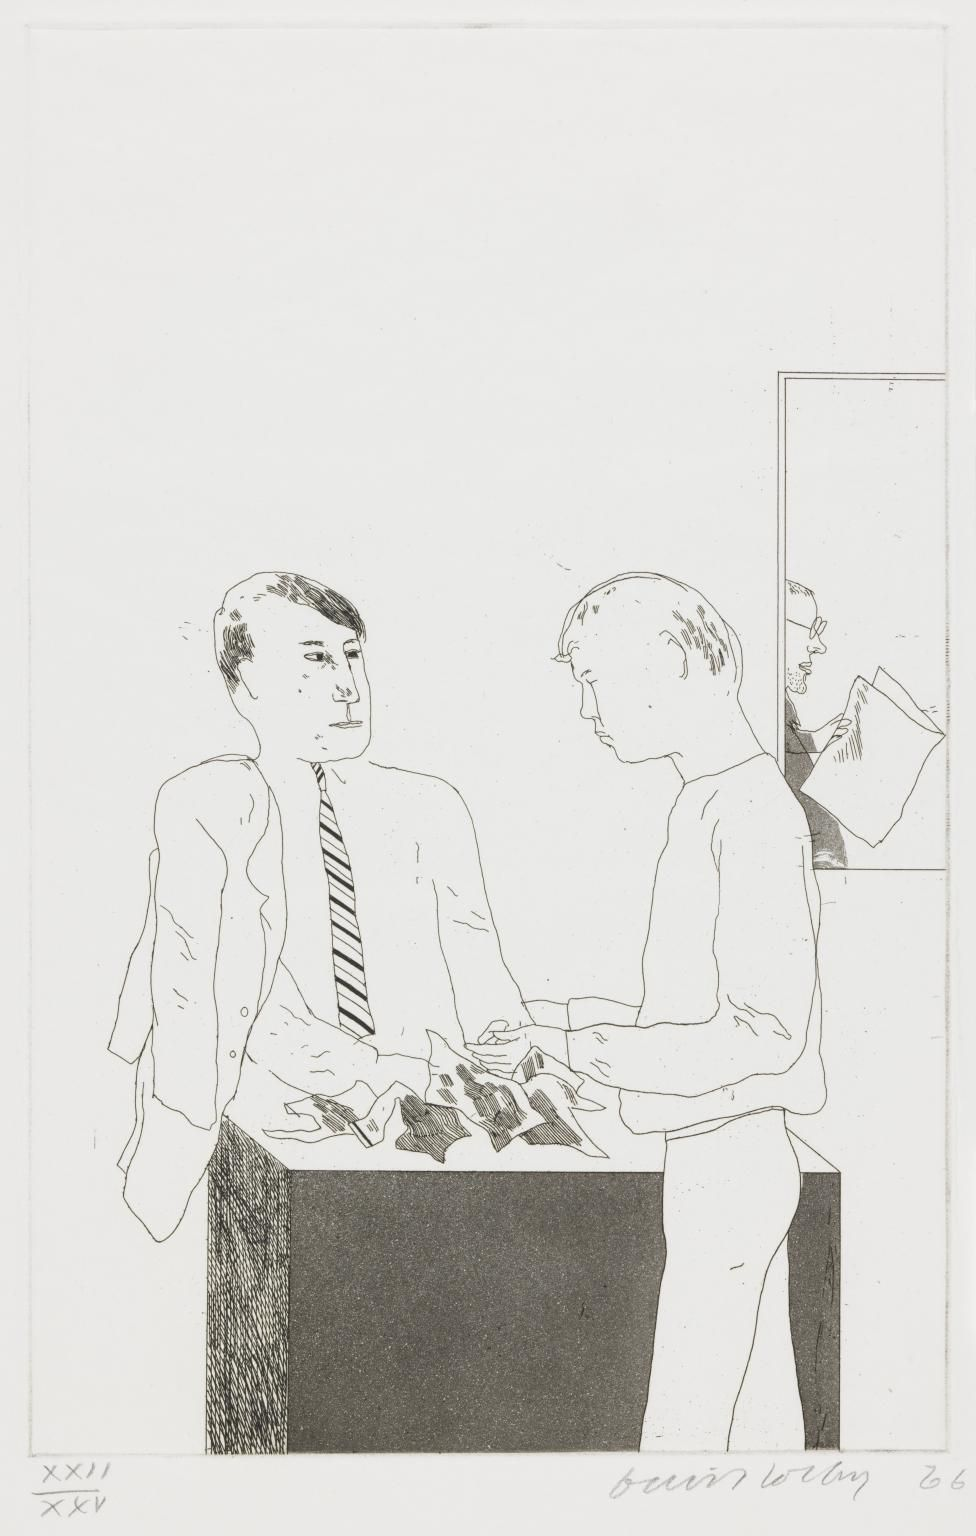 "David Hockney, He Enquired After the Quality, 1966, Etching and aquatint on paper, 13 13/16"" × 8 7/8"" at Anita Rogers Gallery"